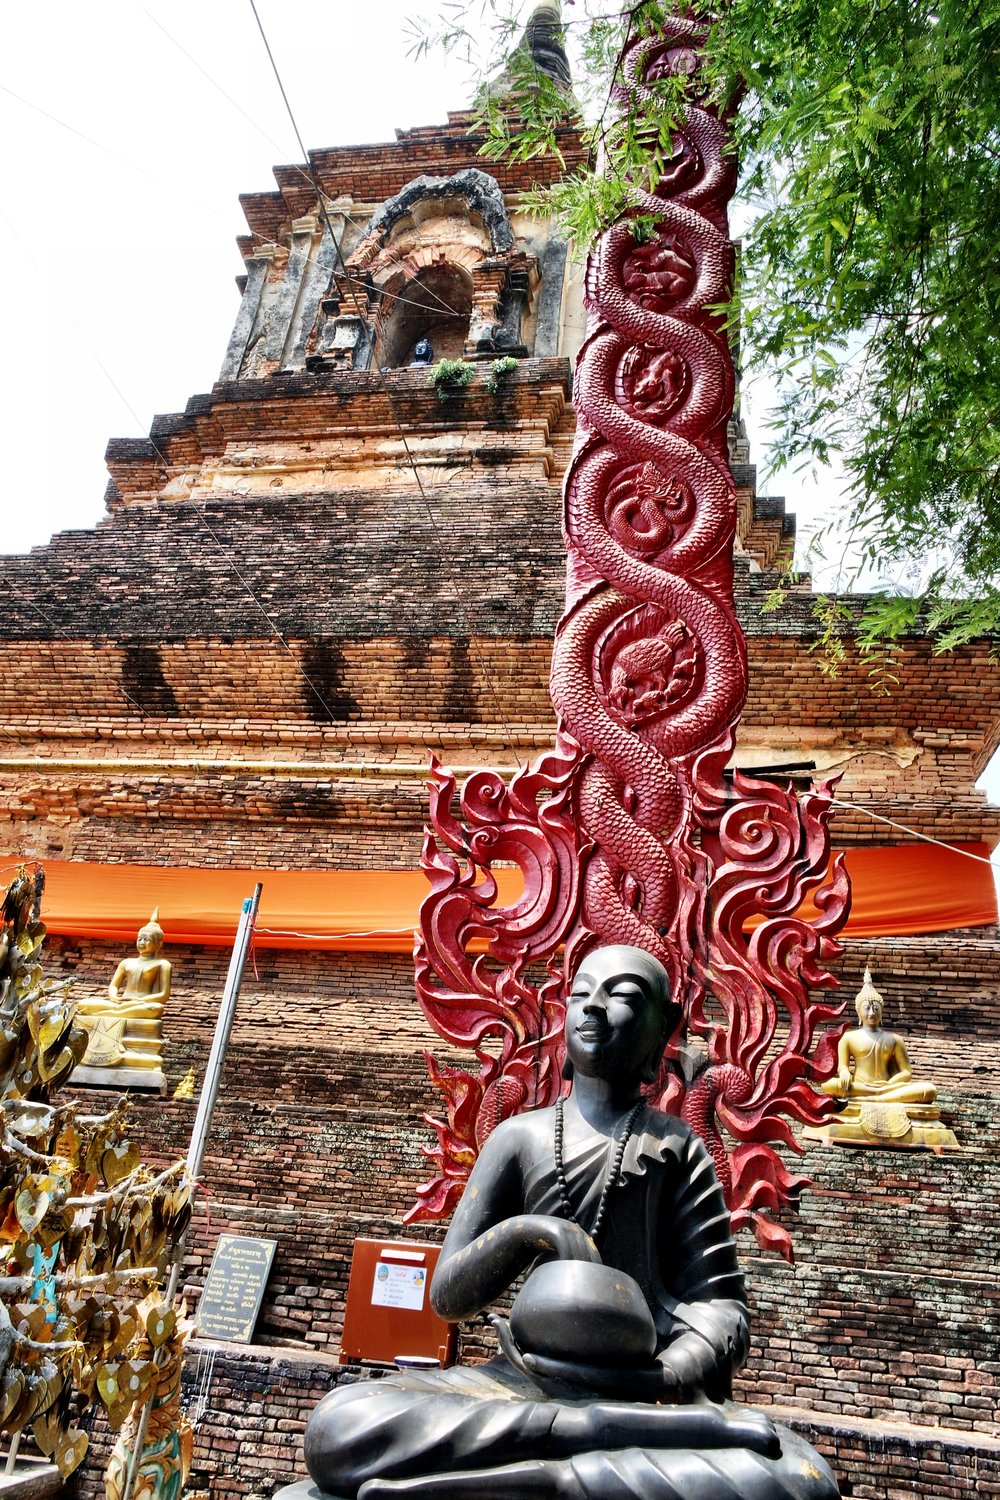 Duke's patron deity Upakut makes an appearance beneath the chedi at Wat Lok Molee